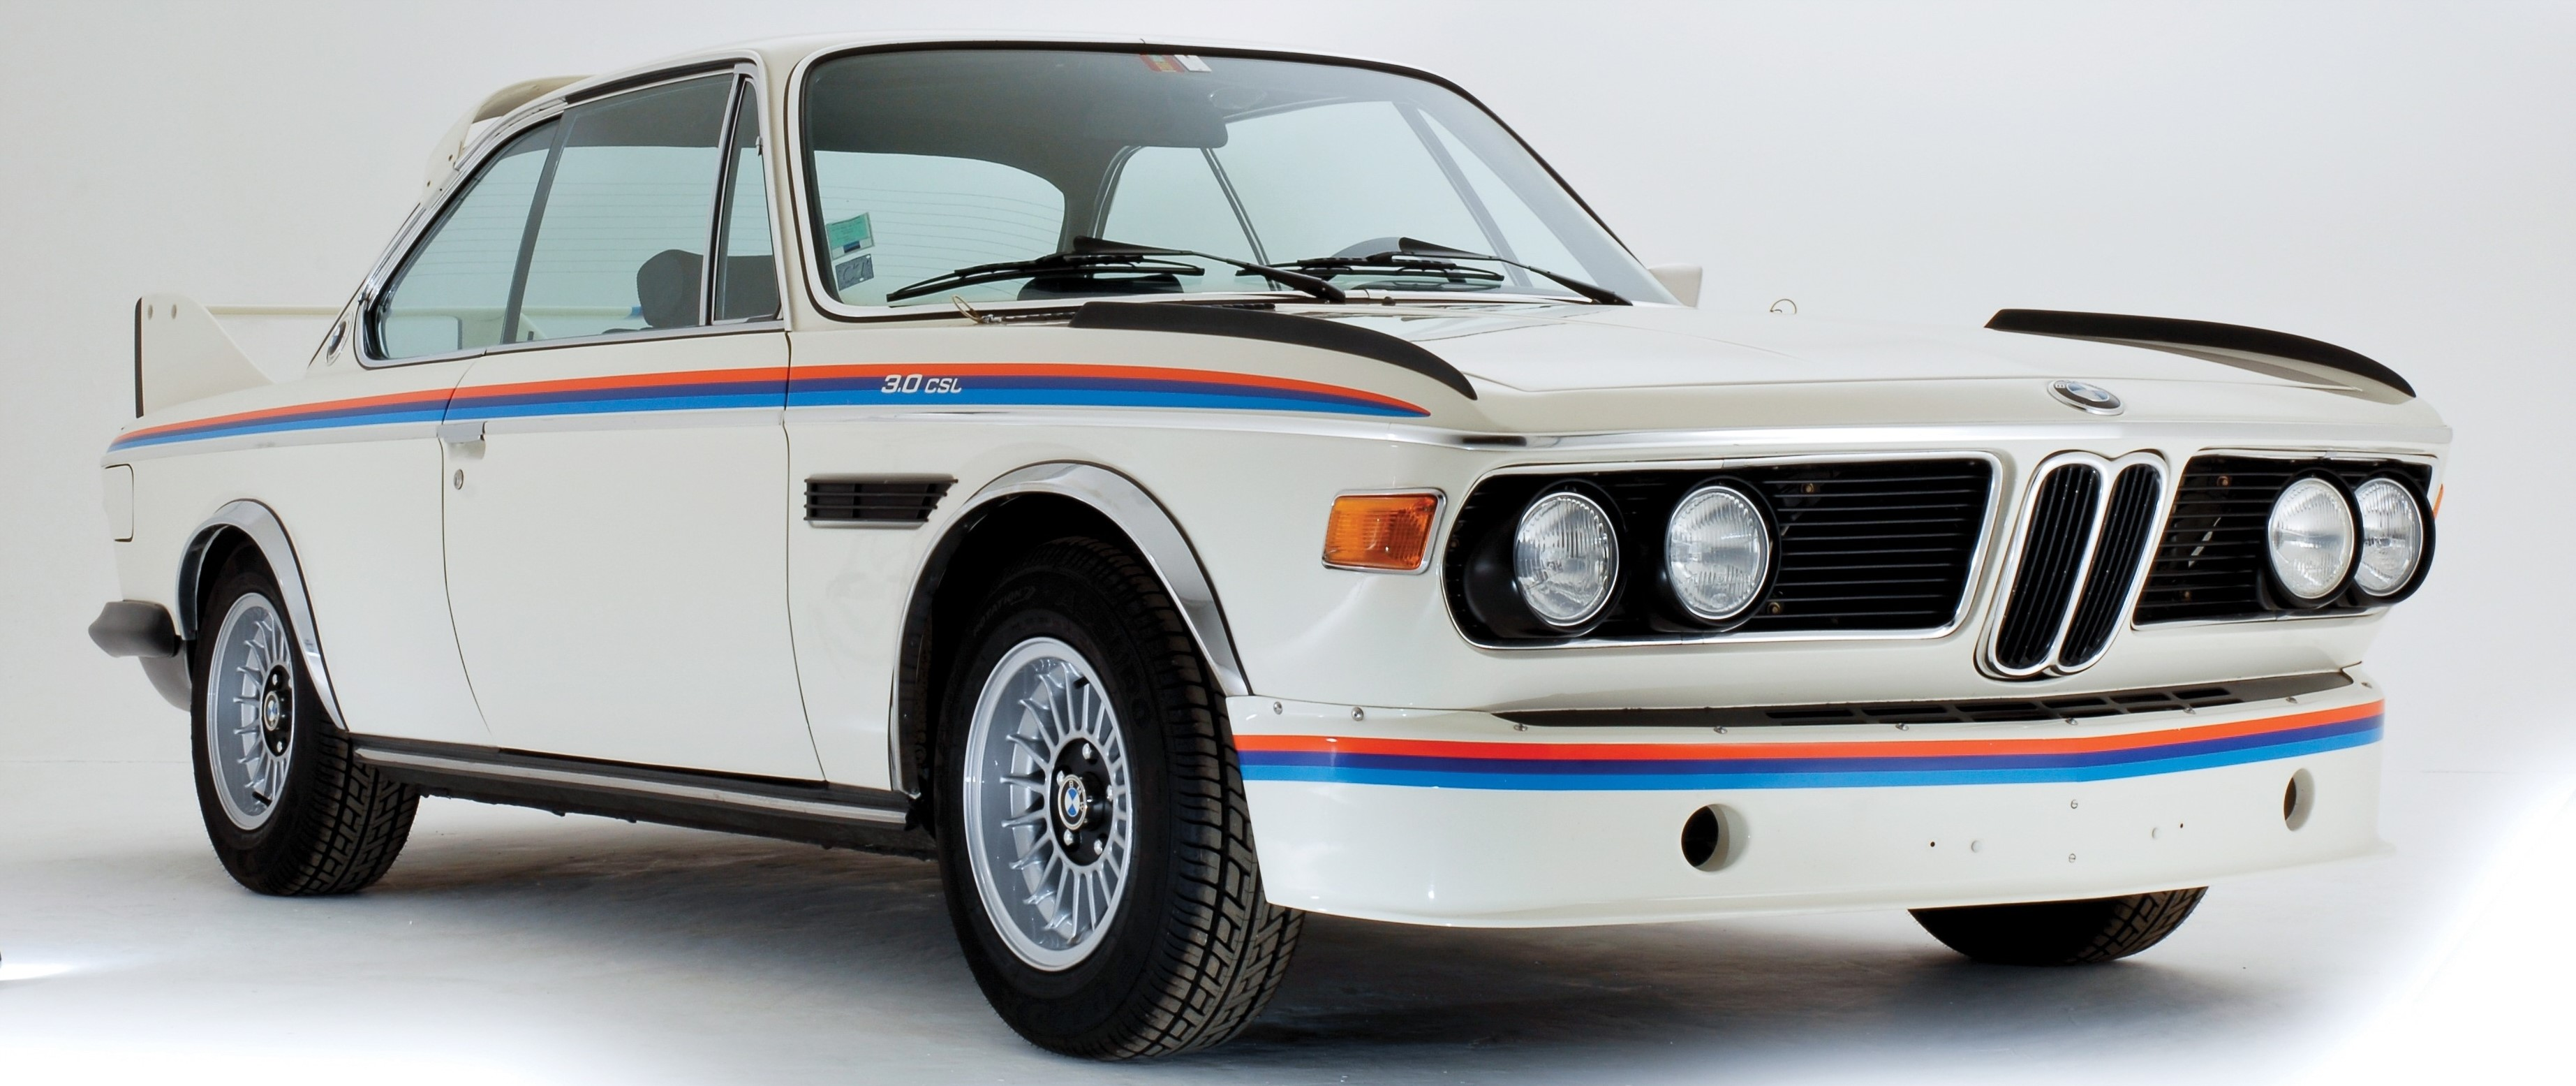 vintage-bmw-3.0-cs-car-wallpaper-1